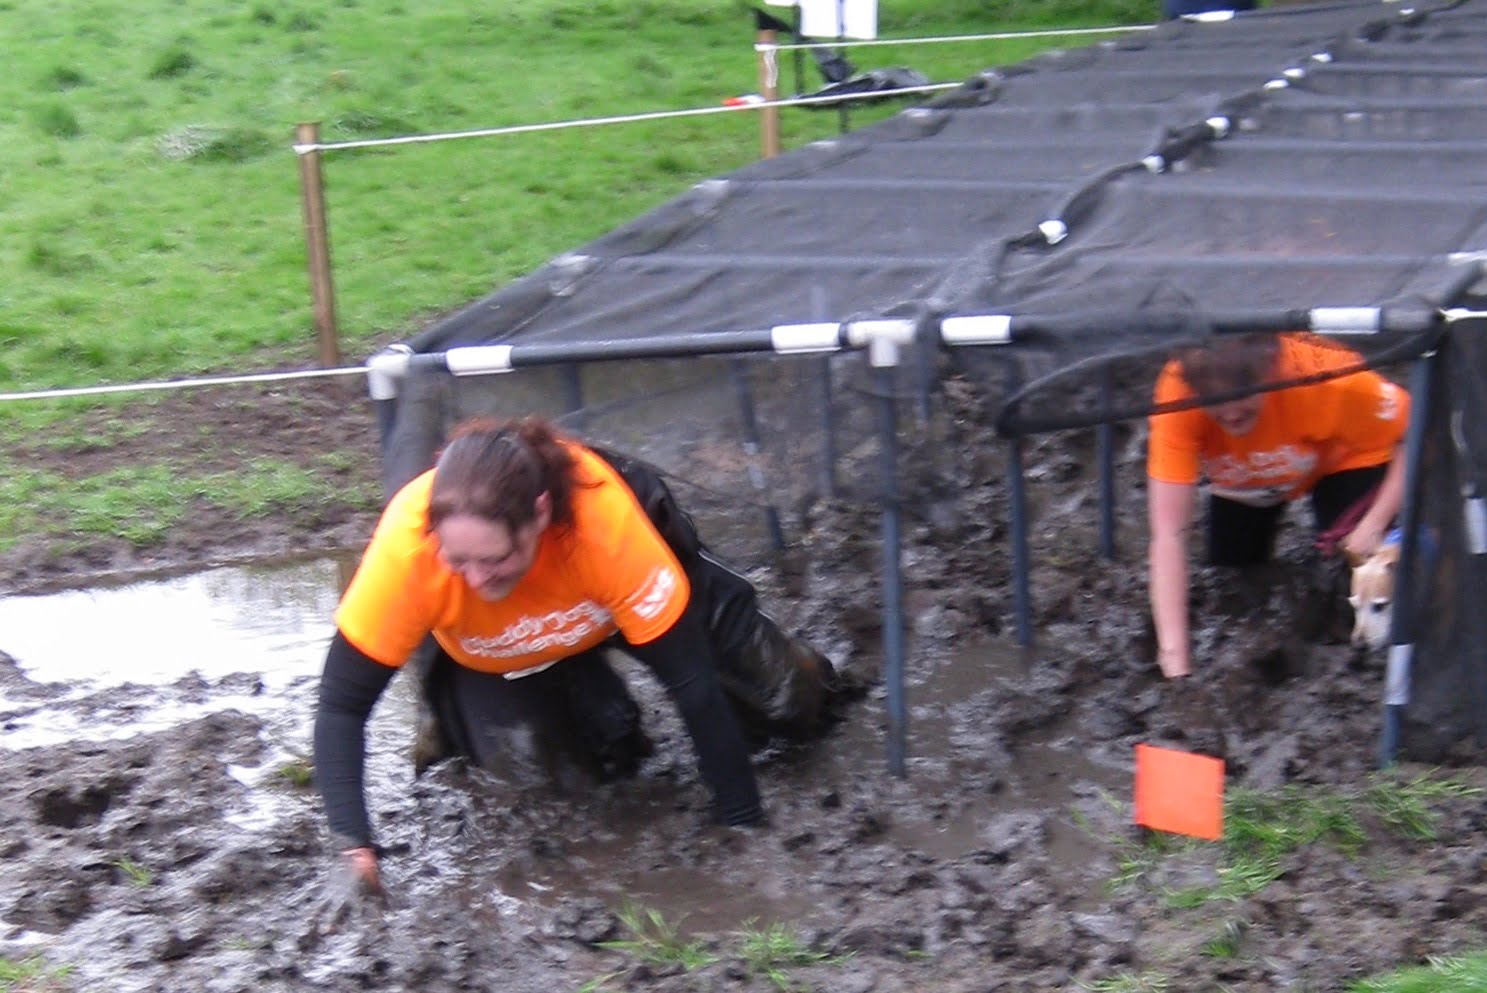 What it's like at the Battersea Muddy Dog challenge